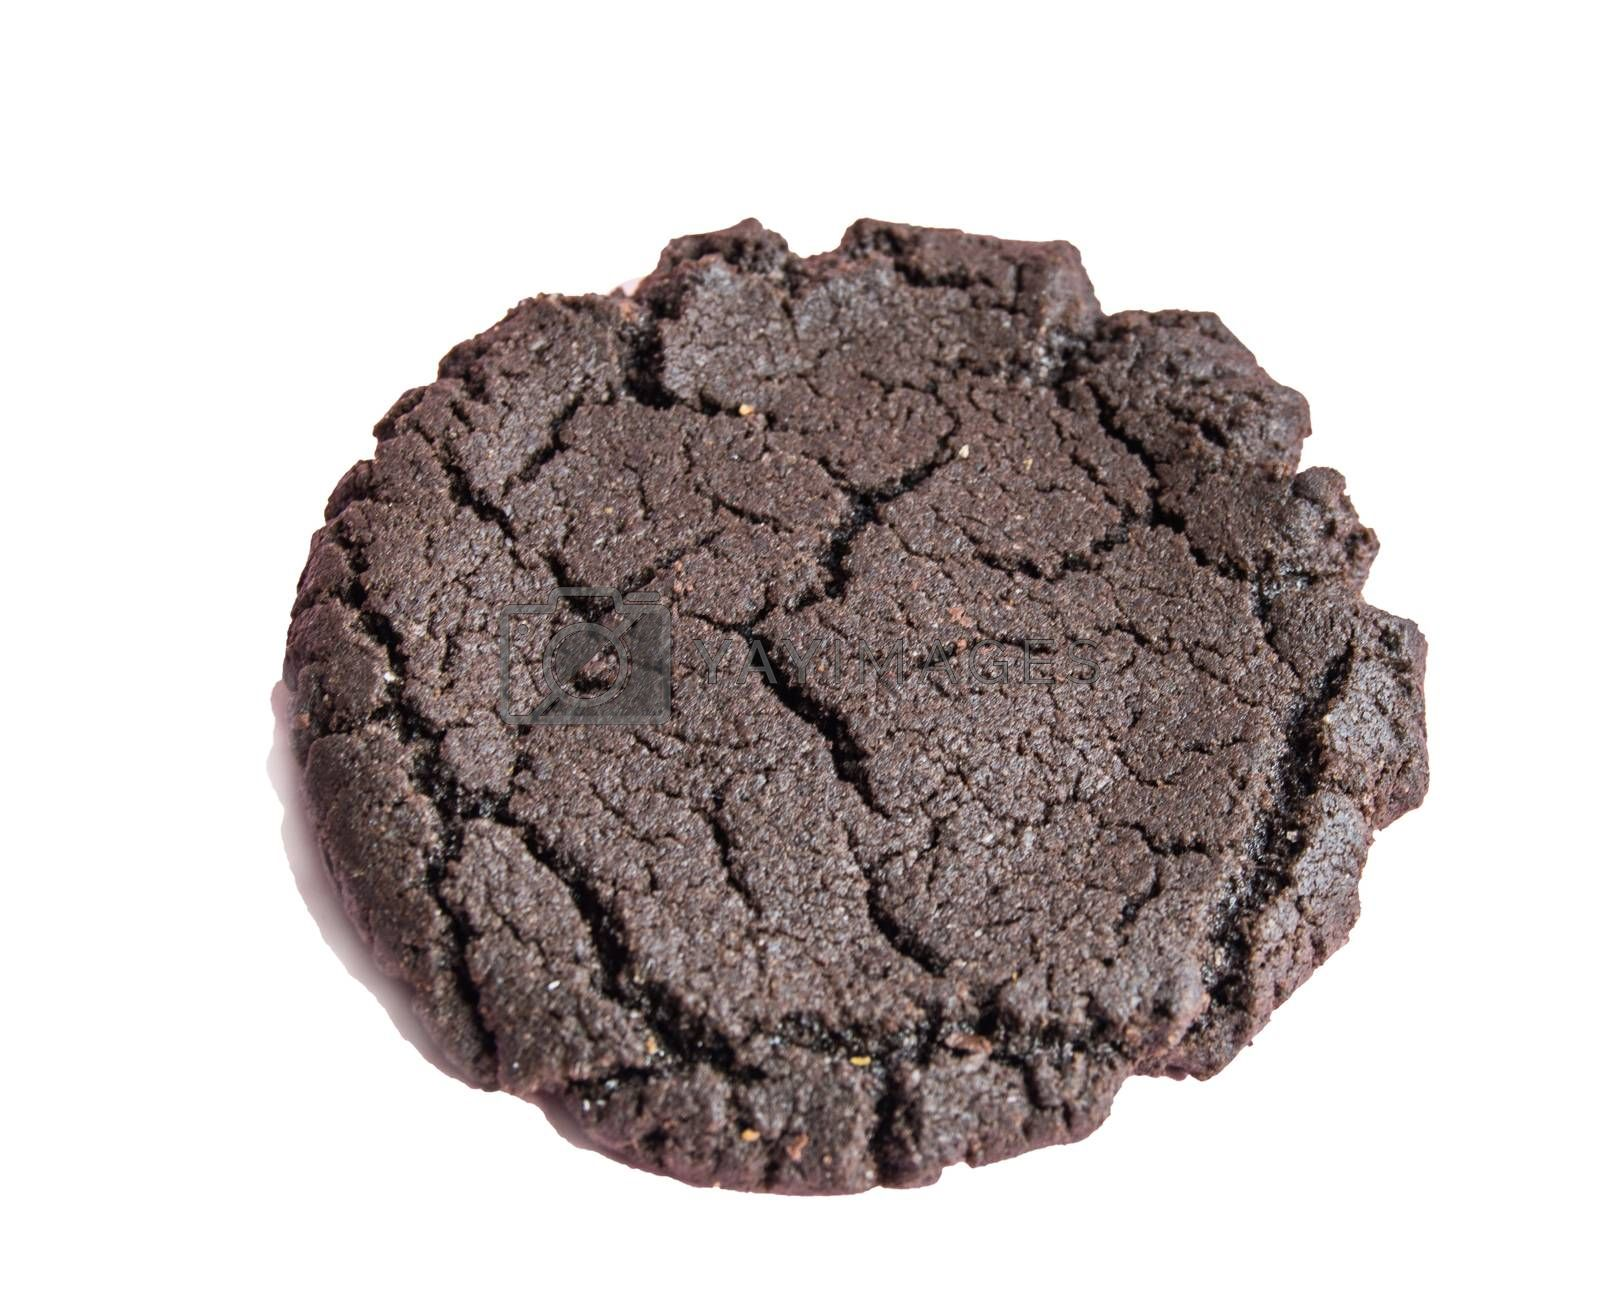 One chocolate cookie isolated on a white background, top view.